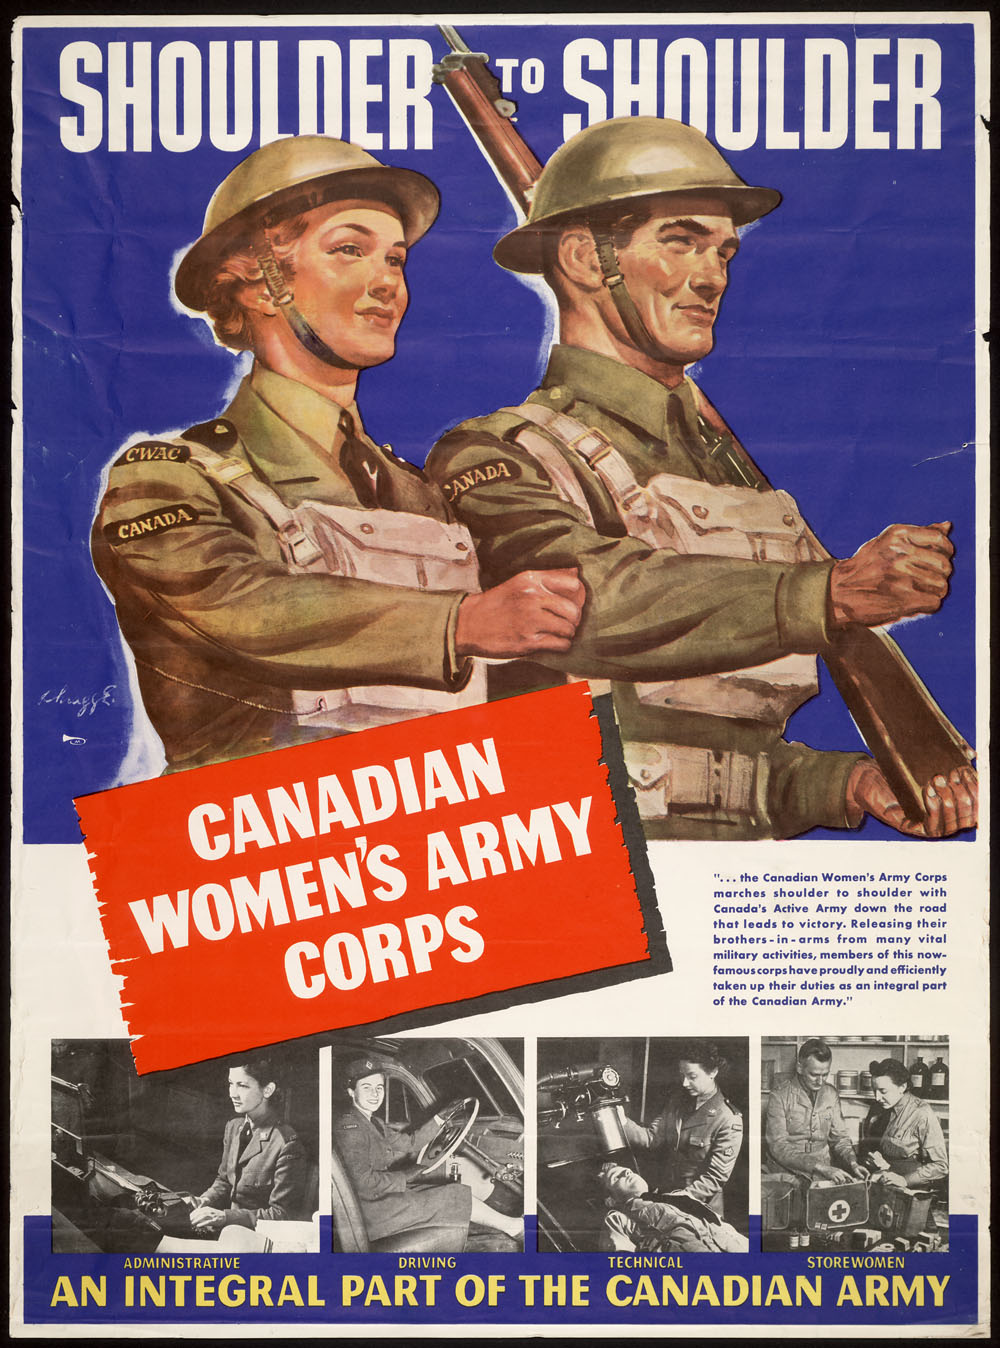 Canadian armed forces in the first and second world wars?